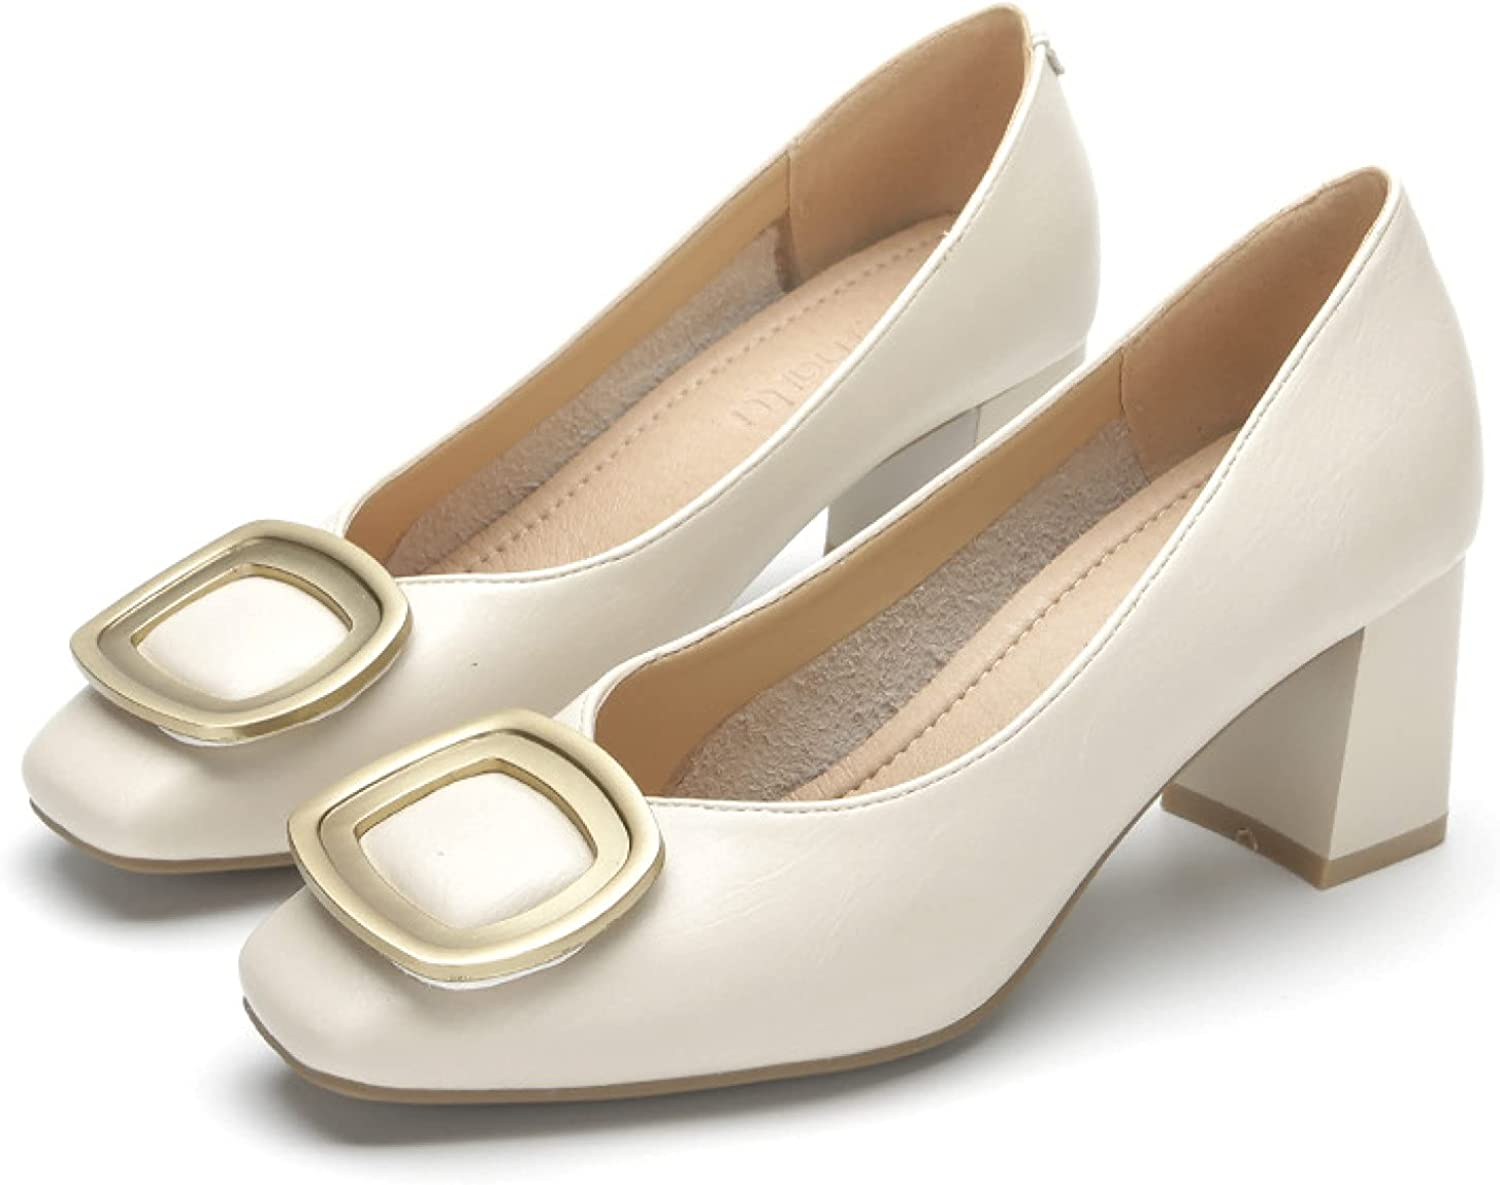 CYBLING Womens Casual Slip-ons Closed Shoe Toe Pumps Square Popular Year-end annual account standard Ligh